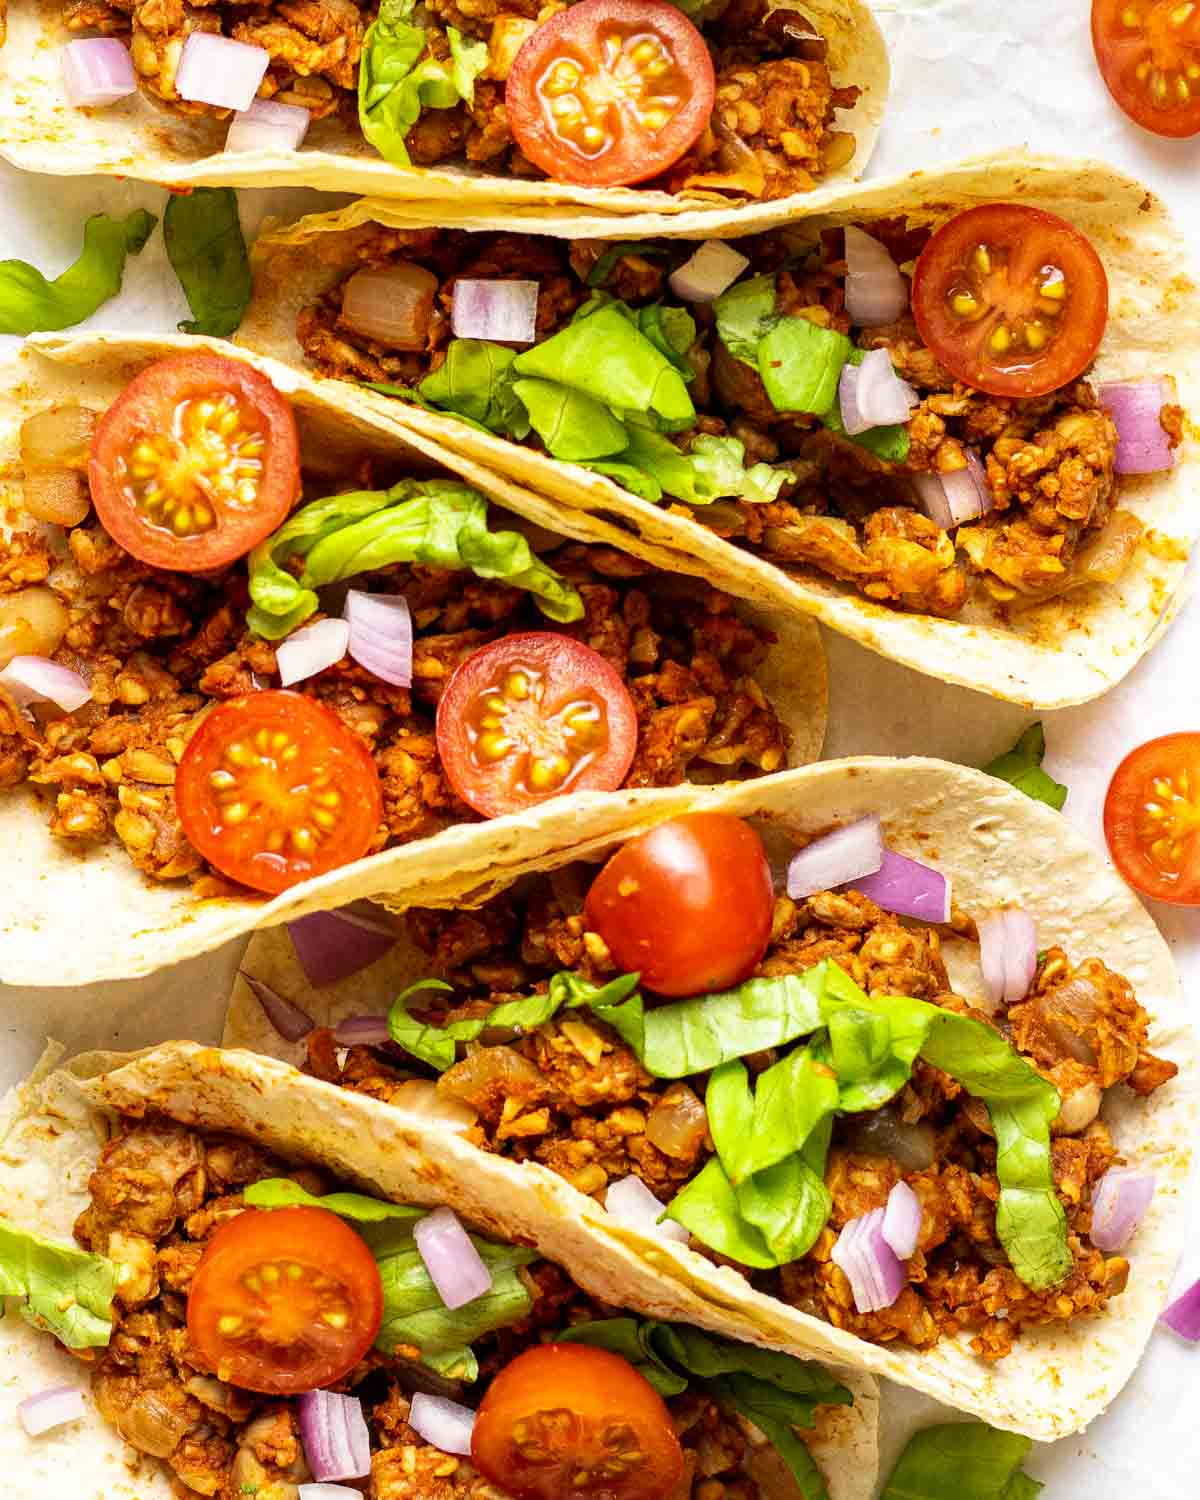 5 tacos filled with halved cherry tomatoes, shredded lettuce and taco meat.